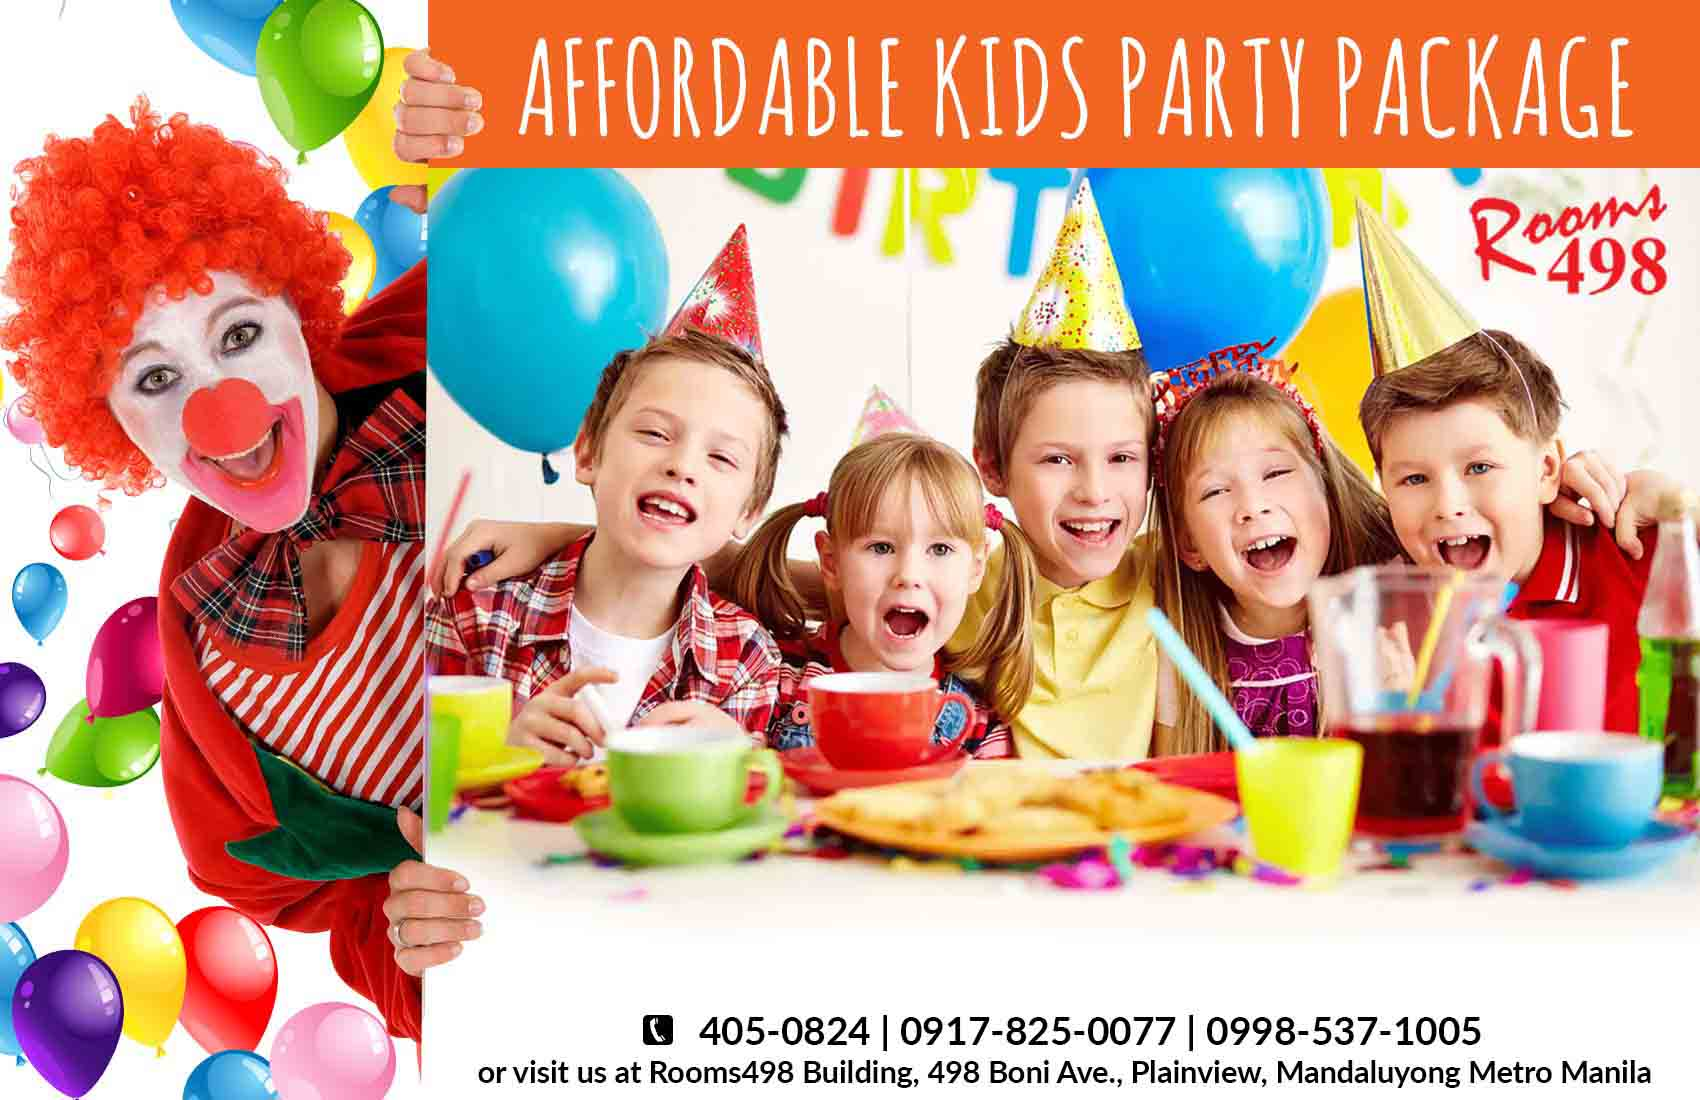 Affordable Kids Party with all in packages in Metro Manila. rooms498.com